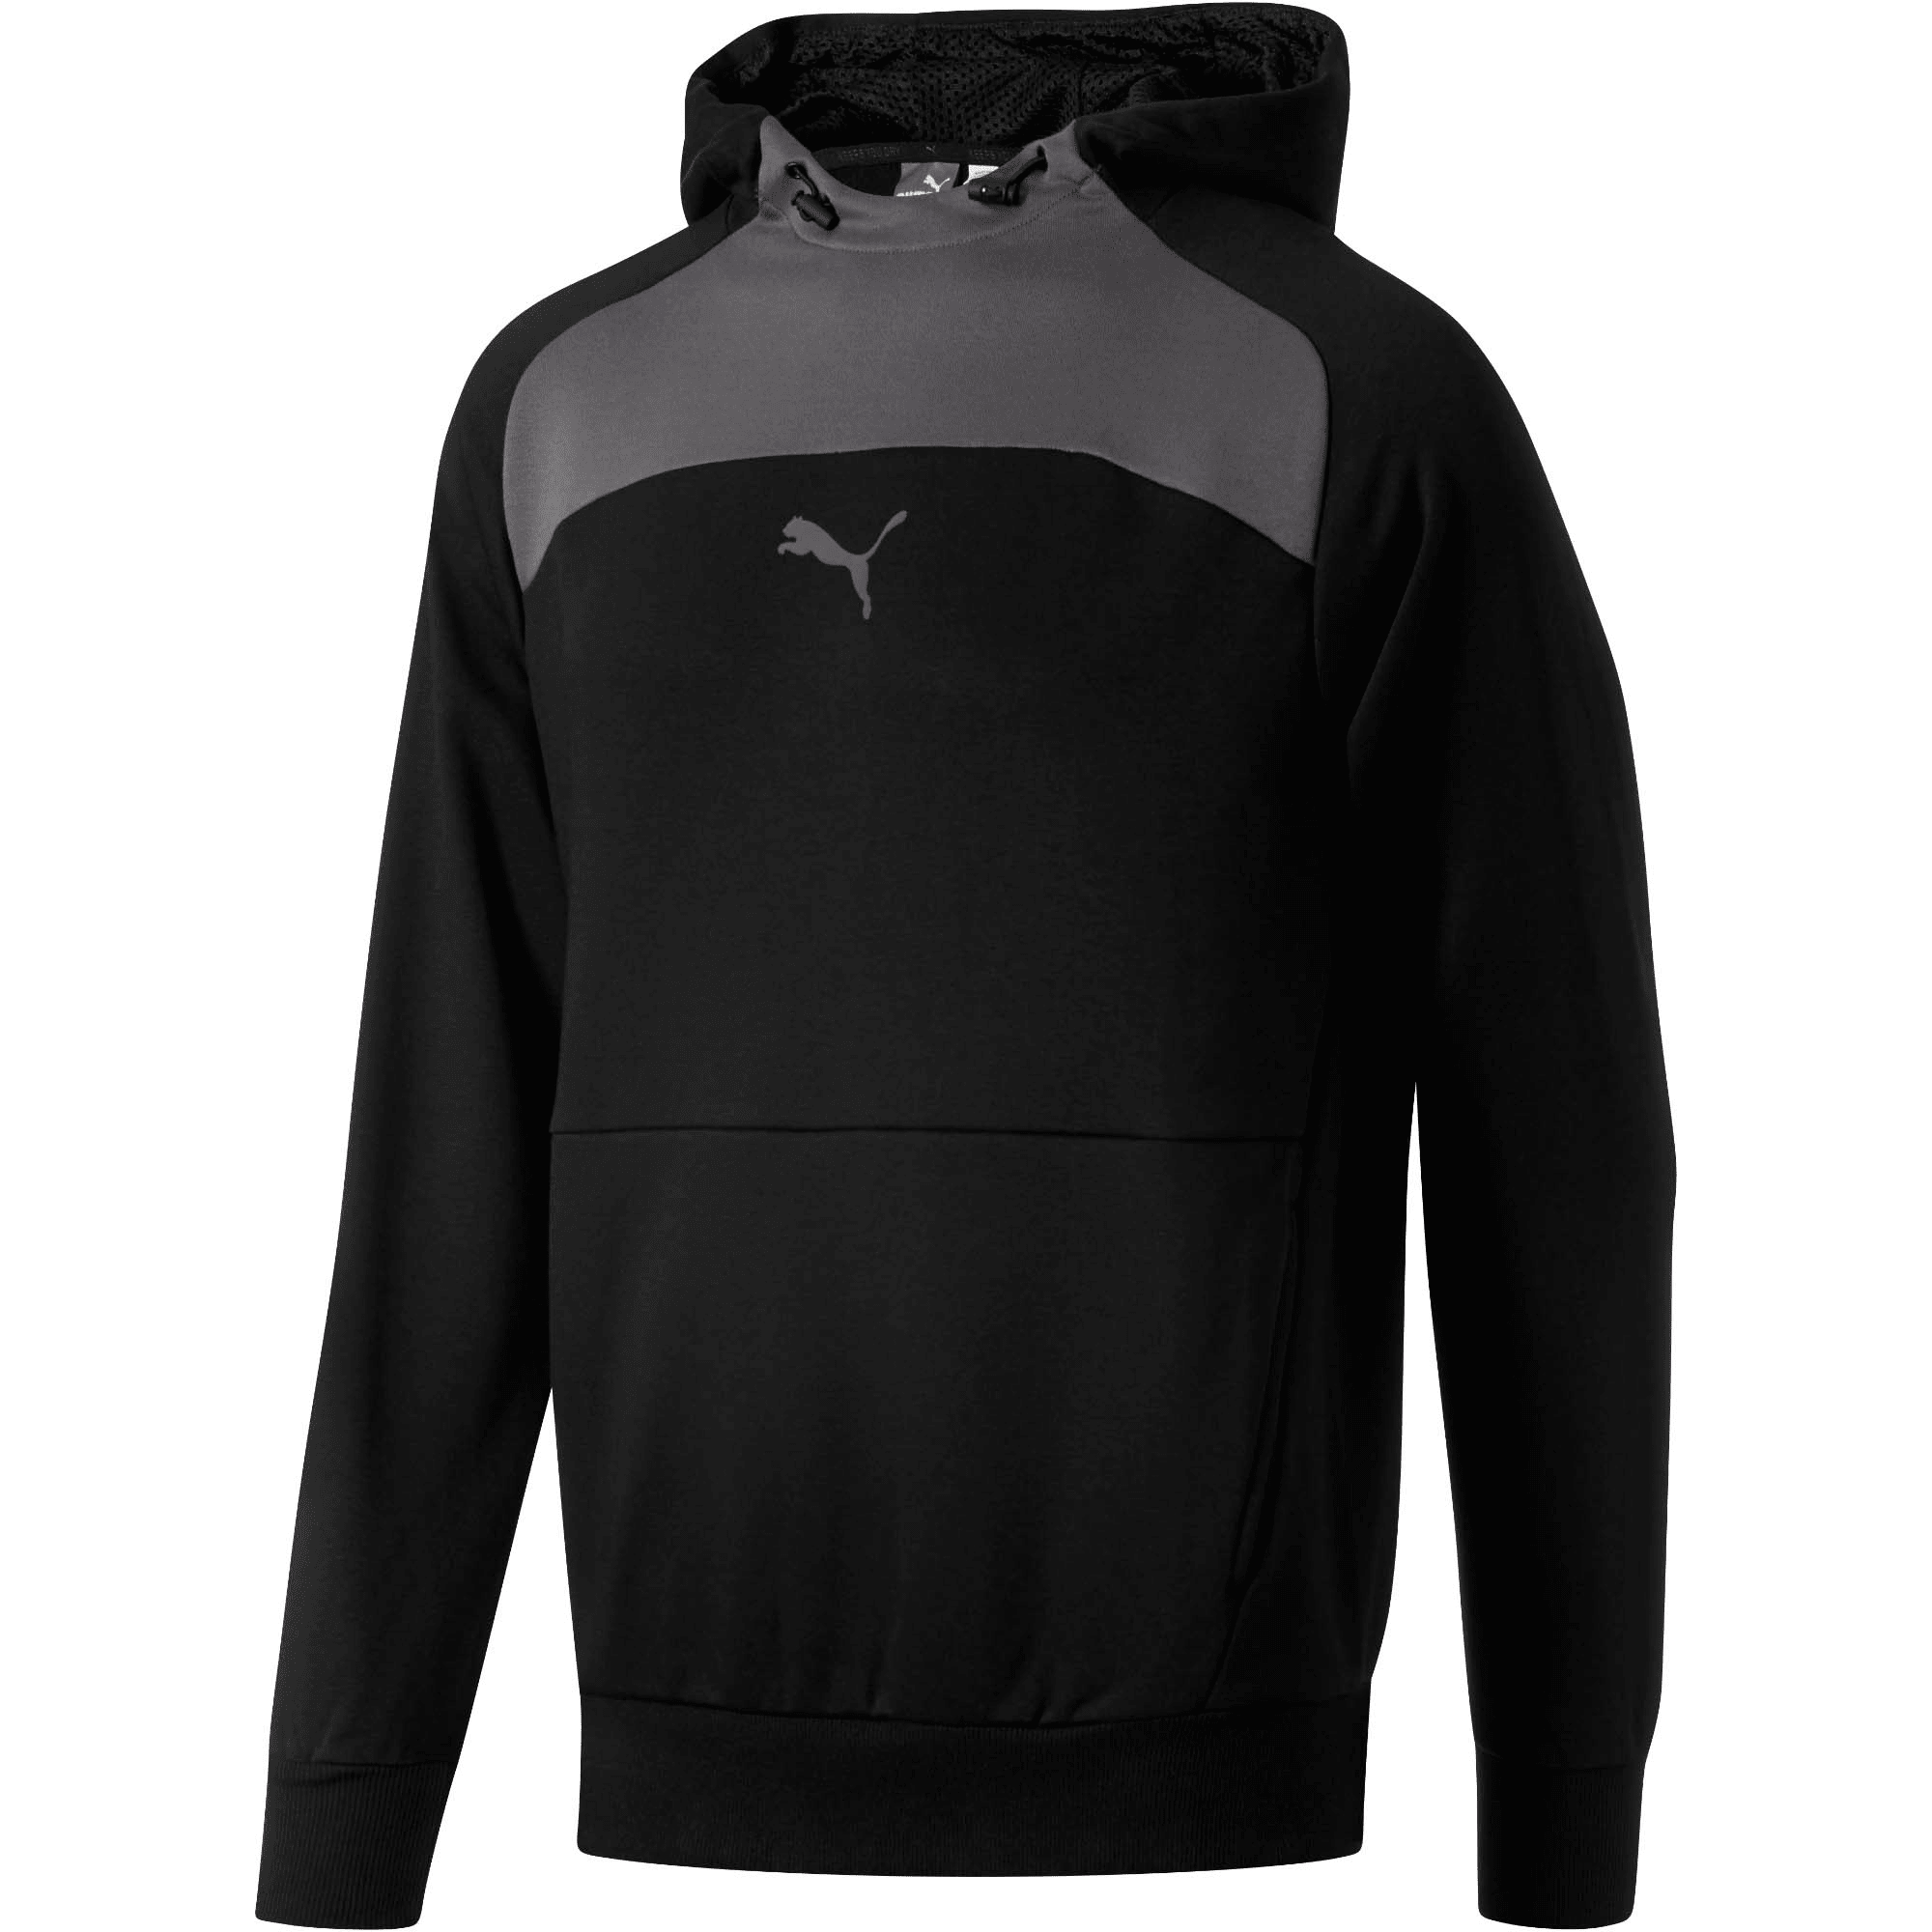 Thumbnail 1 of Modern Sports Hoodie, Cotton Black, medium